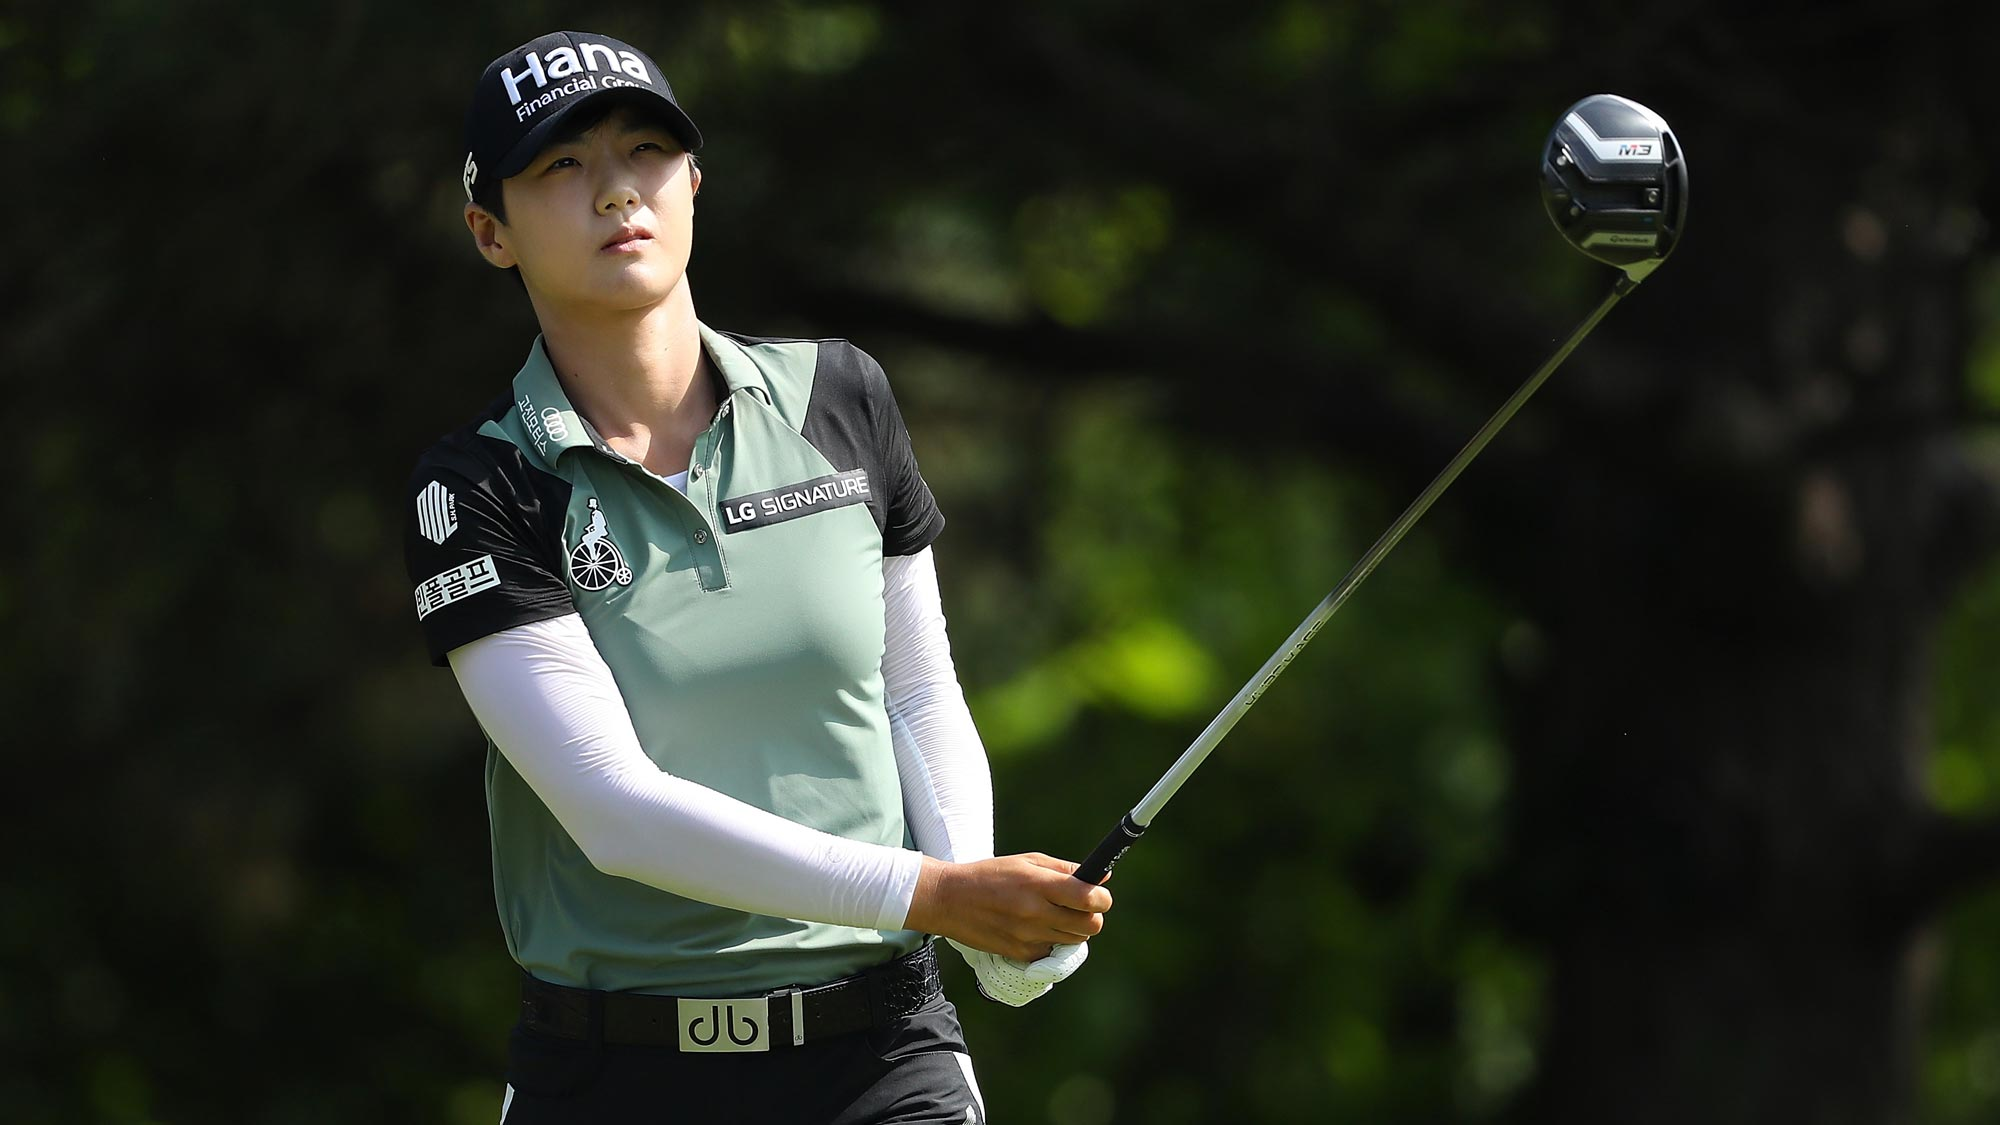 Sung Hyun Park of Korea watches her drive on the second hole during the final round of the 2018 KPMG Women's PGA Championship